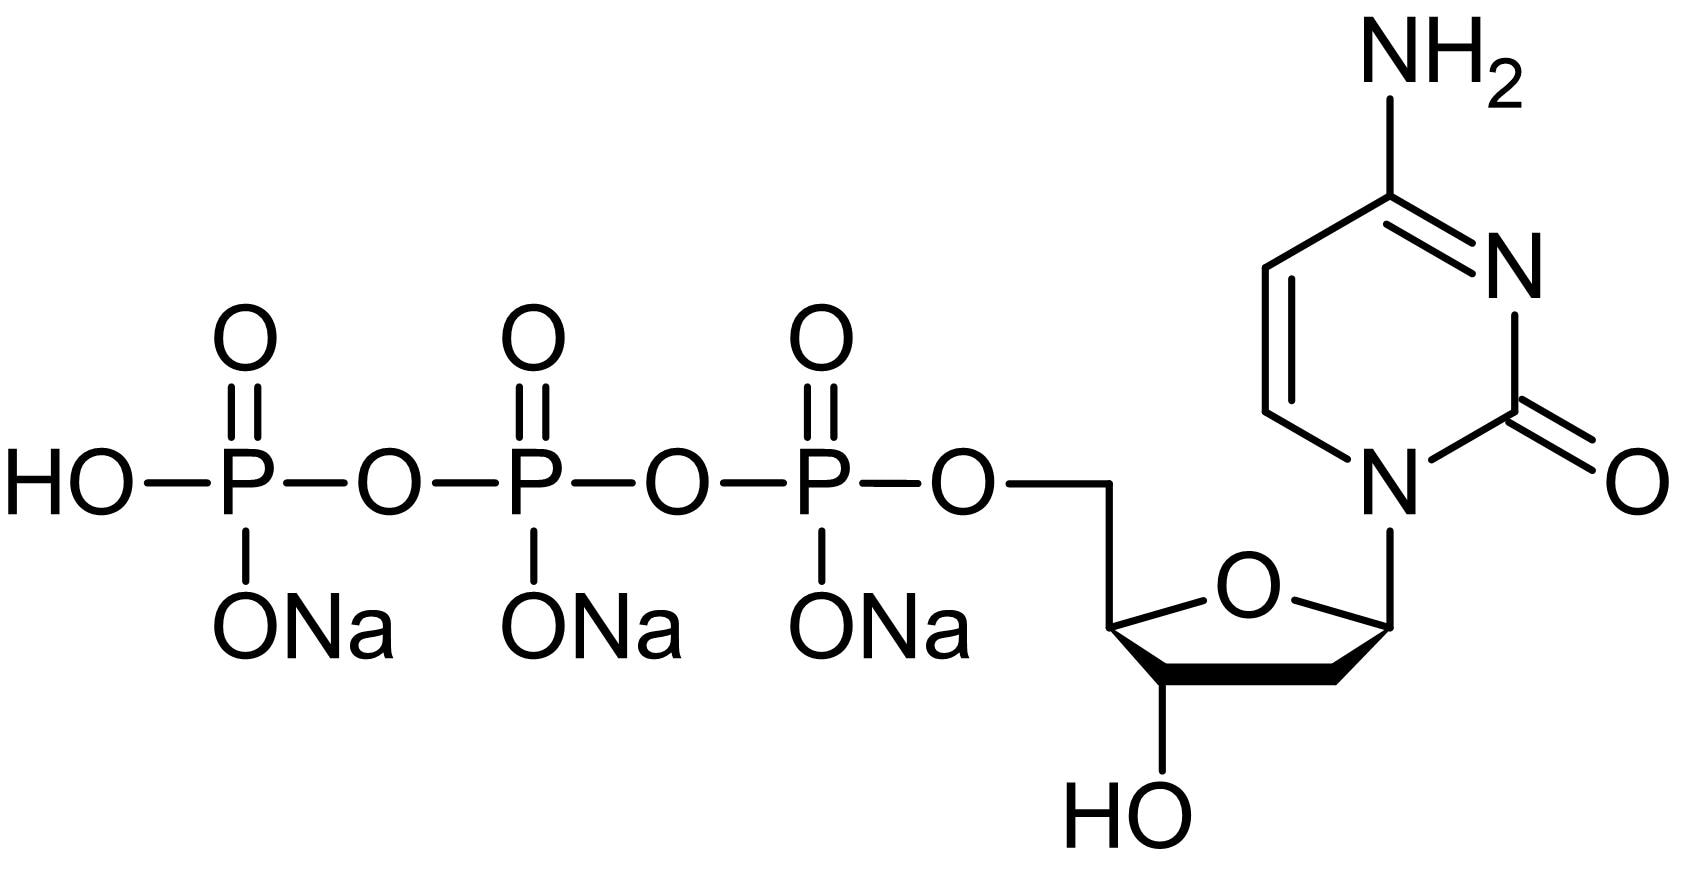 Chemical Structure - 2'-Deoxycytidine-5'-triphosphate [dCTP] trisodium salt solution, Nucleoside triphosphate (ab146220)